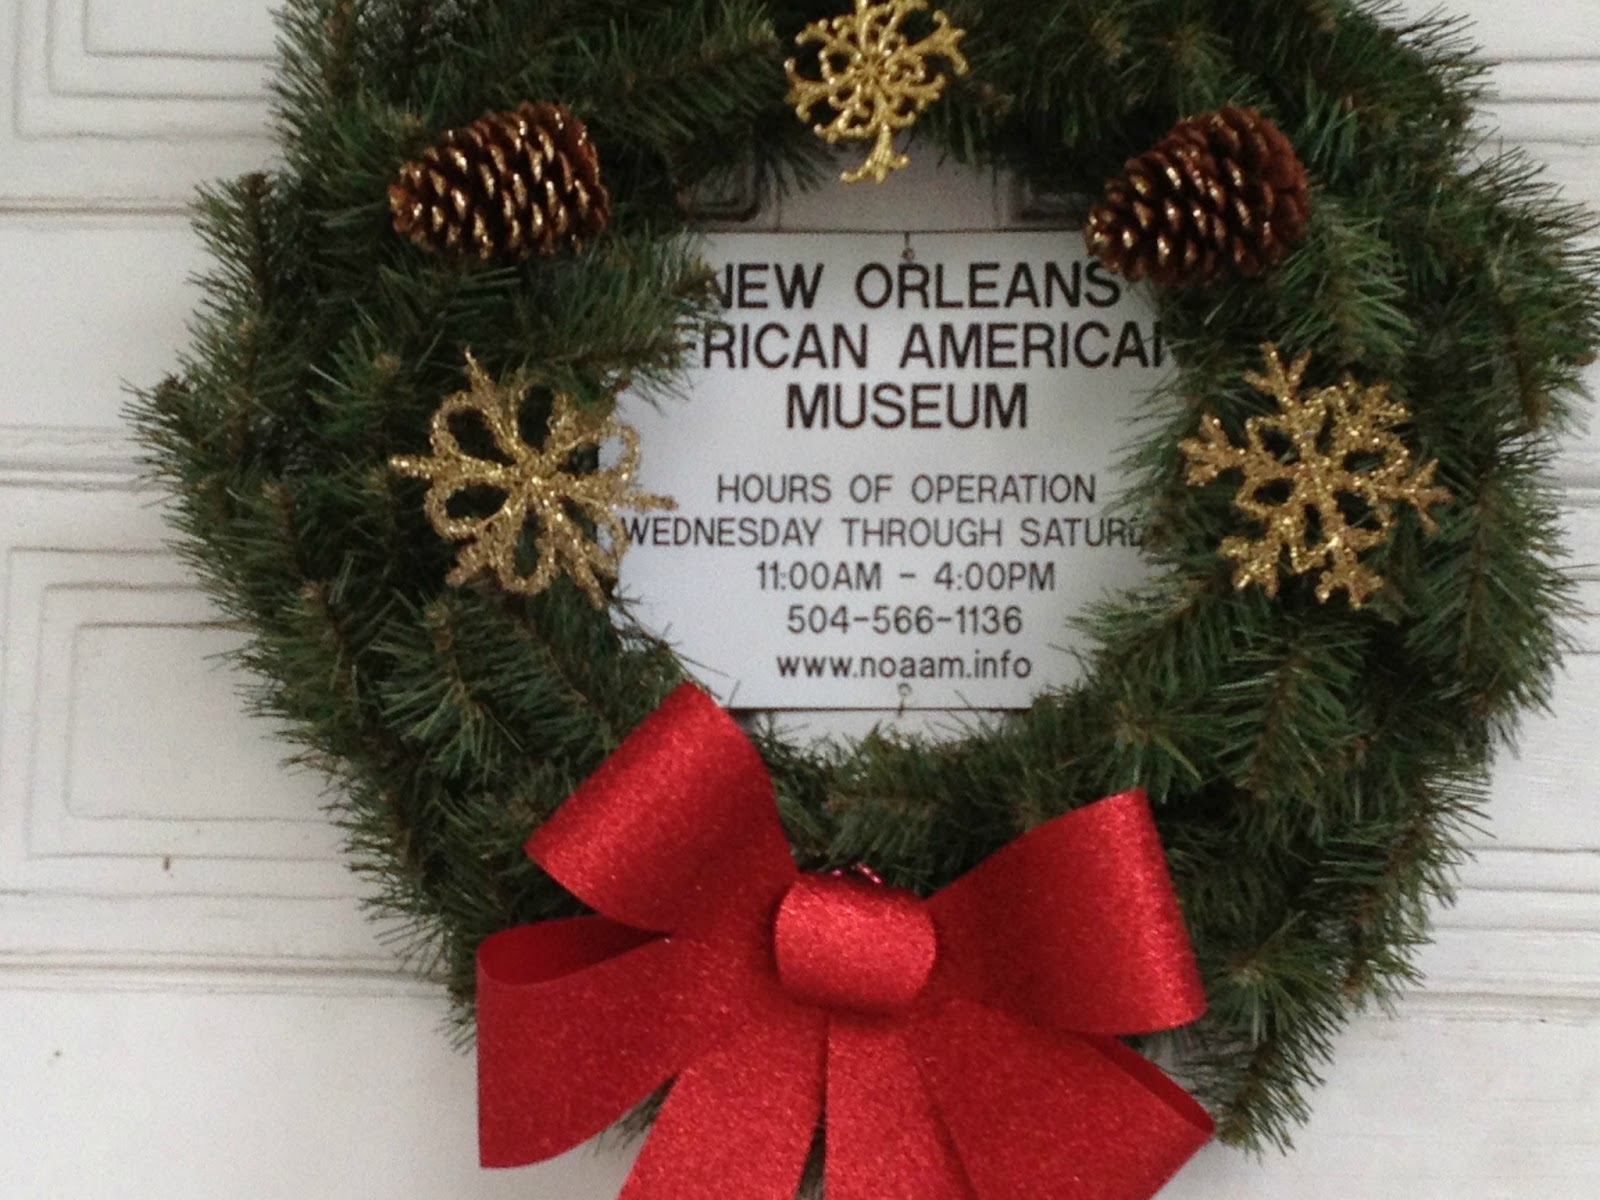 New Orleans African American Museum